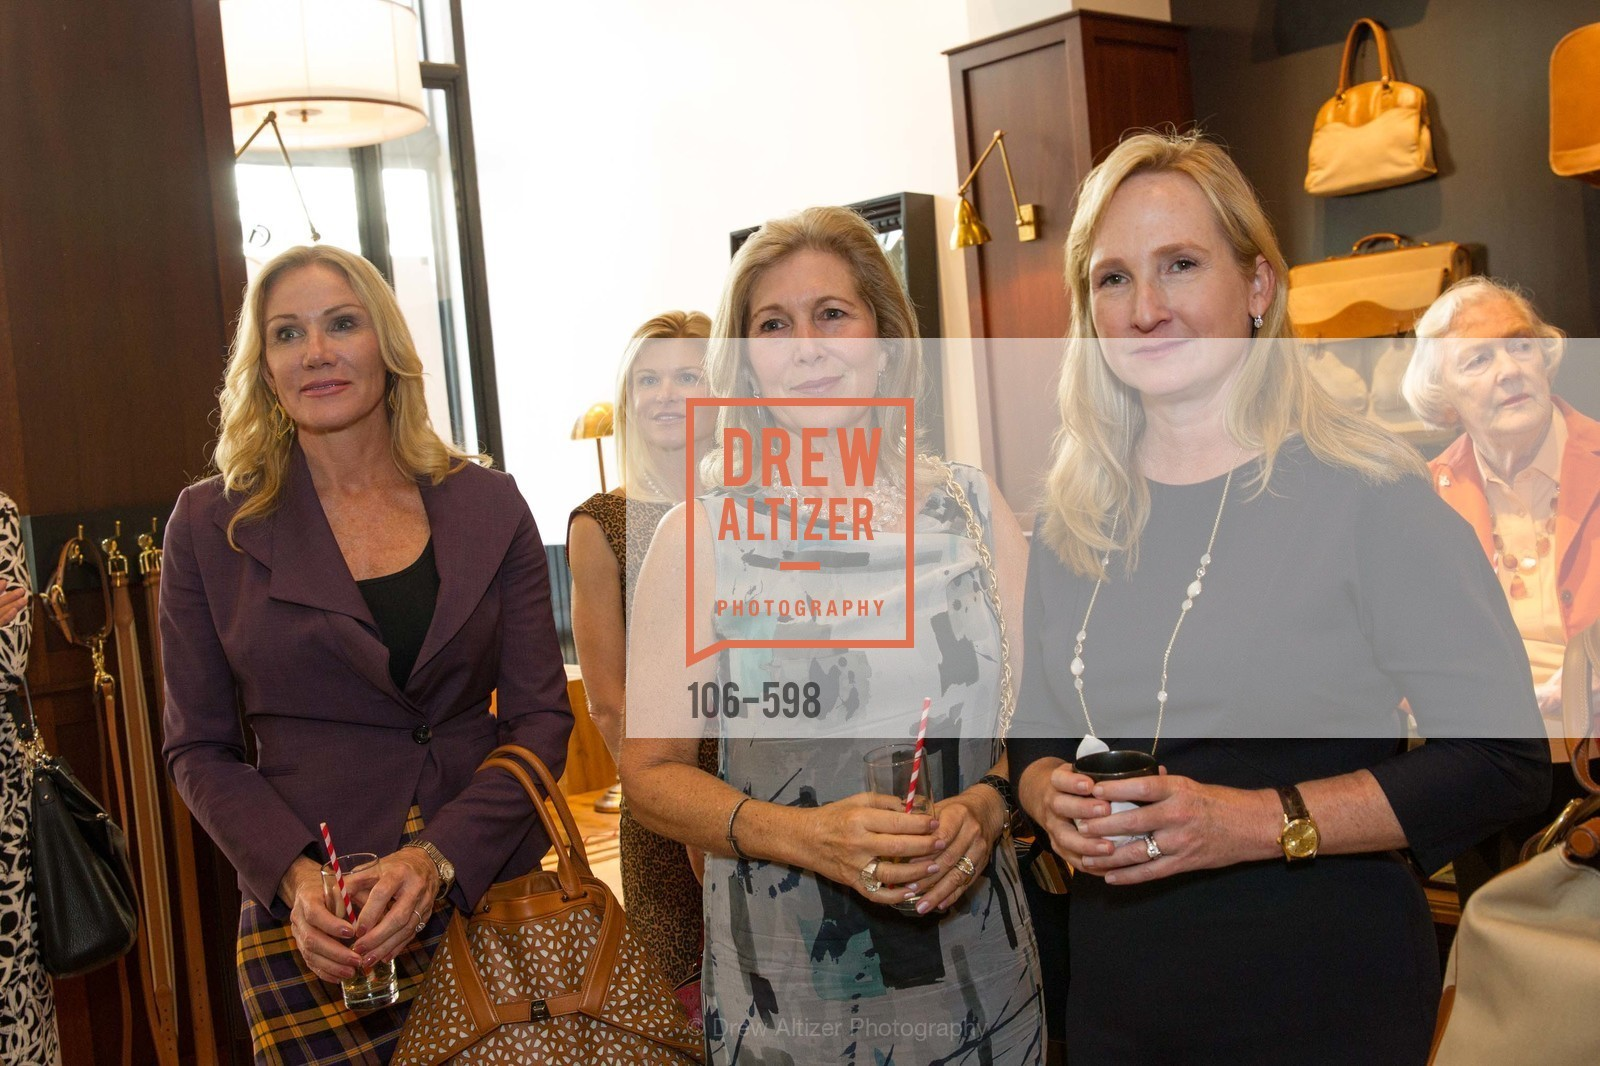 Rosemary Baker, Janie Friend, Anne Pedrero, GHURKA FALL FASHION Press Preview Honoring the ZOO BOARD, US, October 8th, 2014,Drew Altizer, Drew Altizer Photography, full-service agency, private events, San Francisco photographer, photographer california